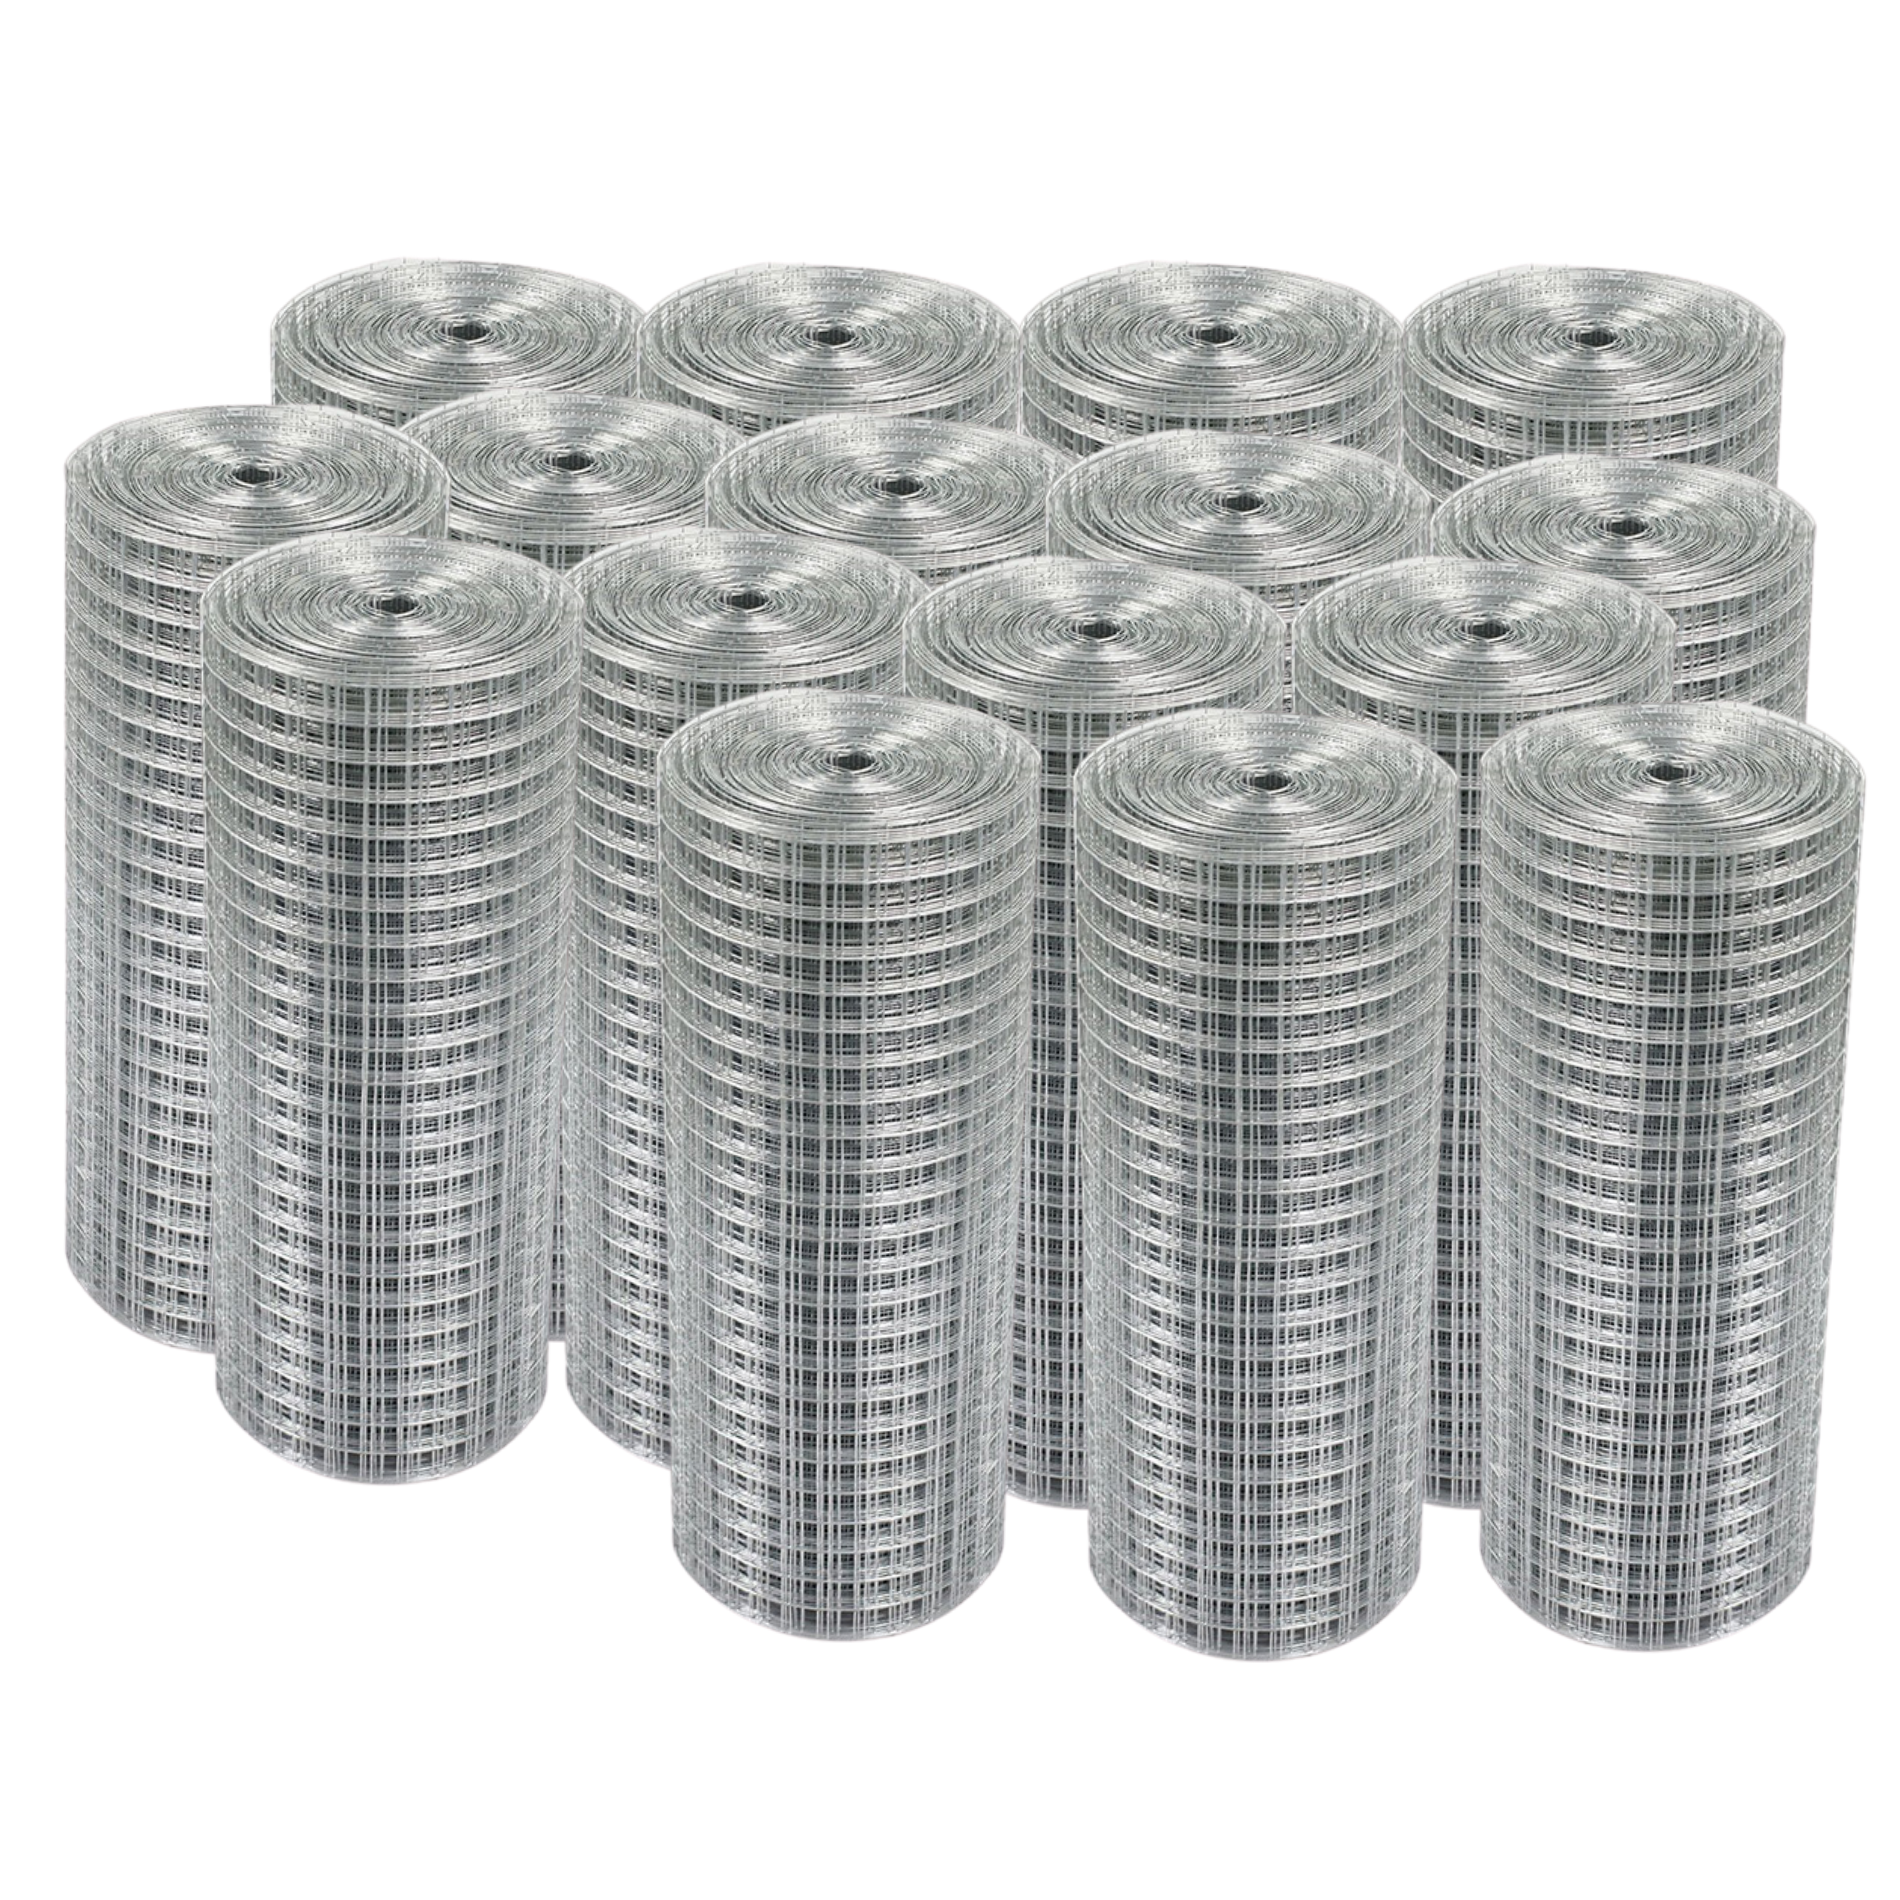 Stainless Steel Rolls-2-2